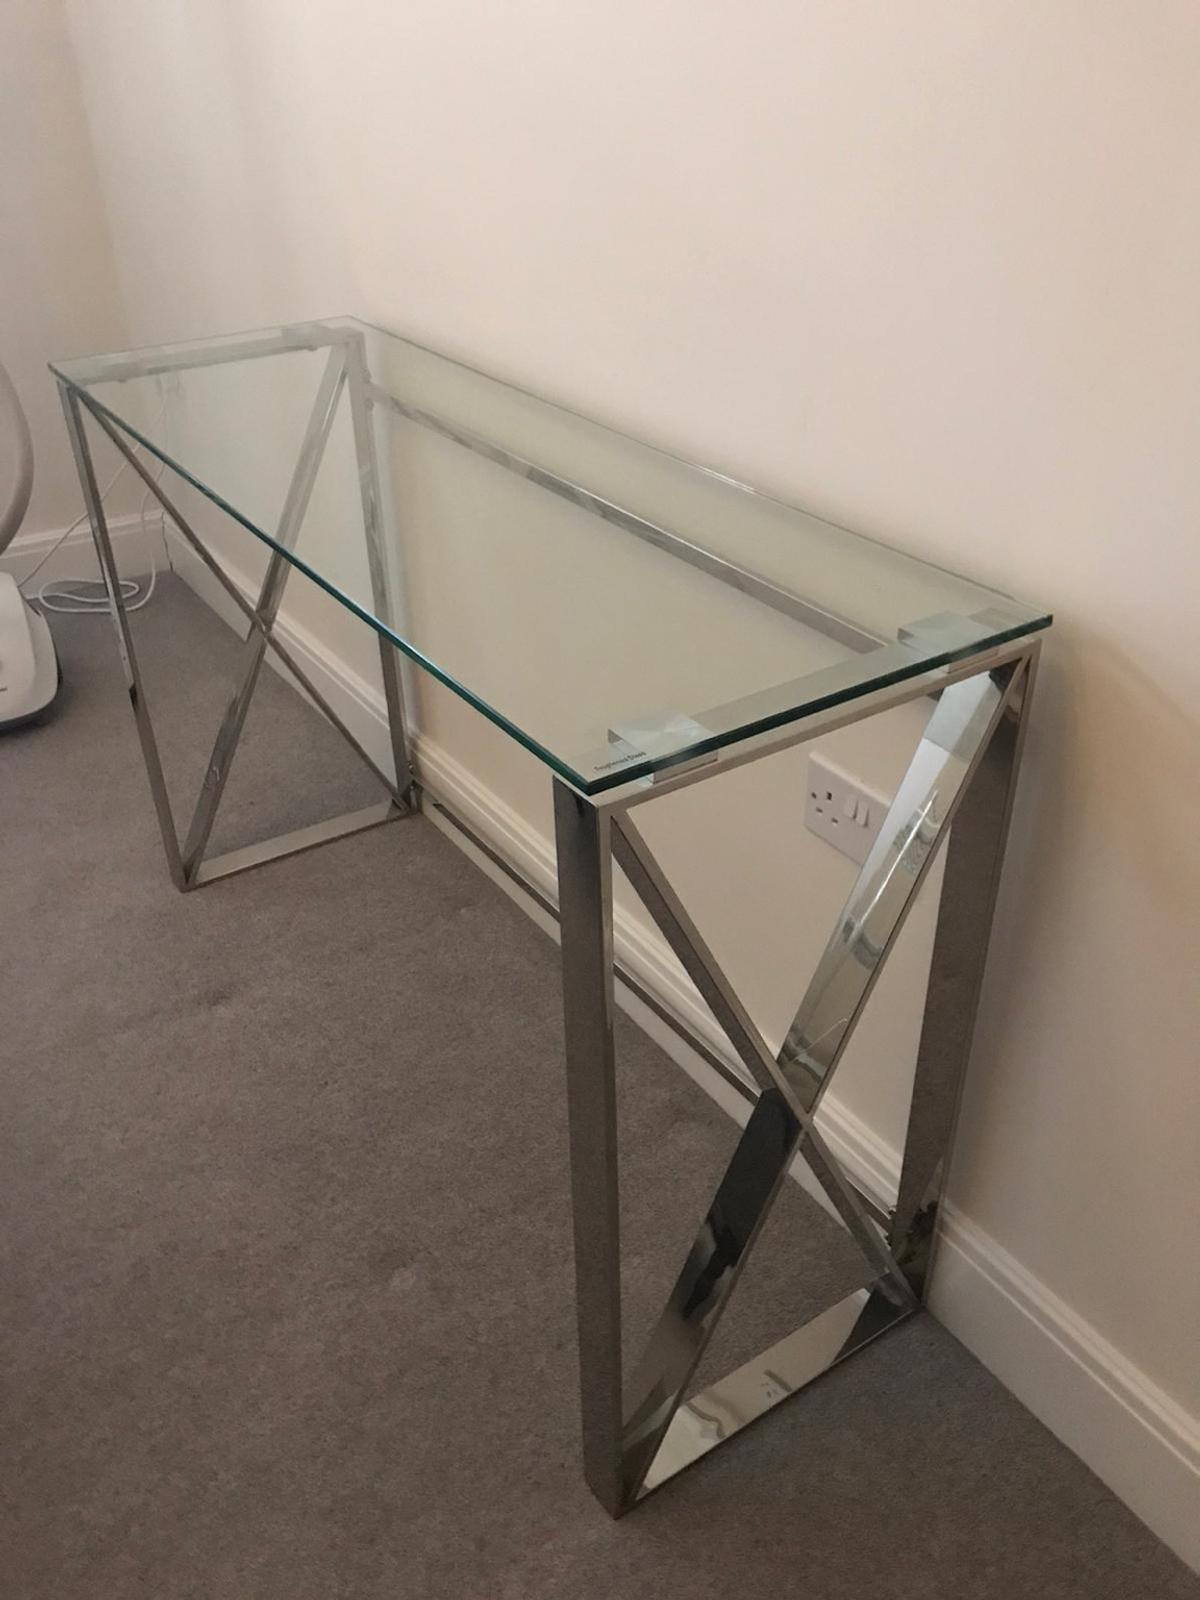 Picture of: Console Table In Rh10 Crawley For 50 00 For Sale Shpock